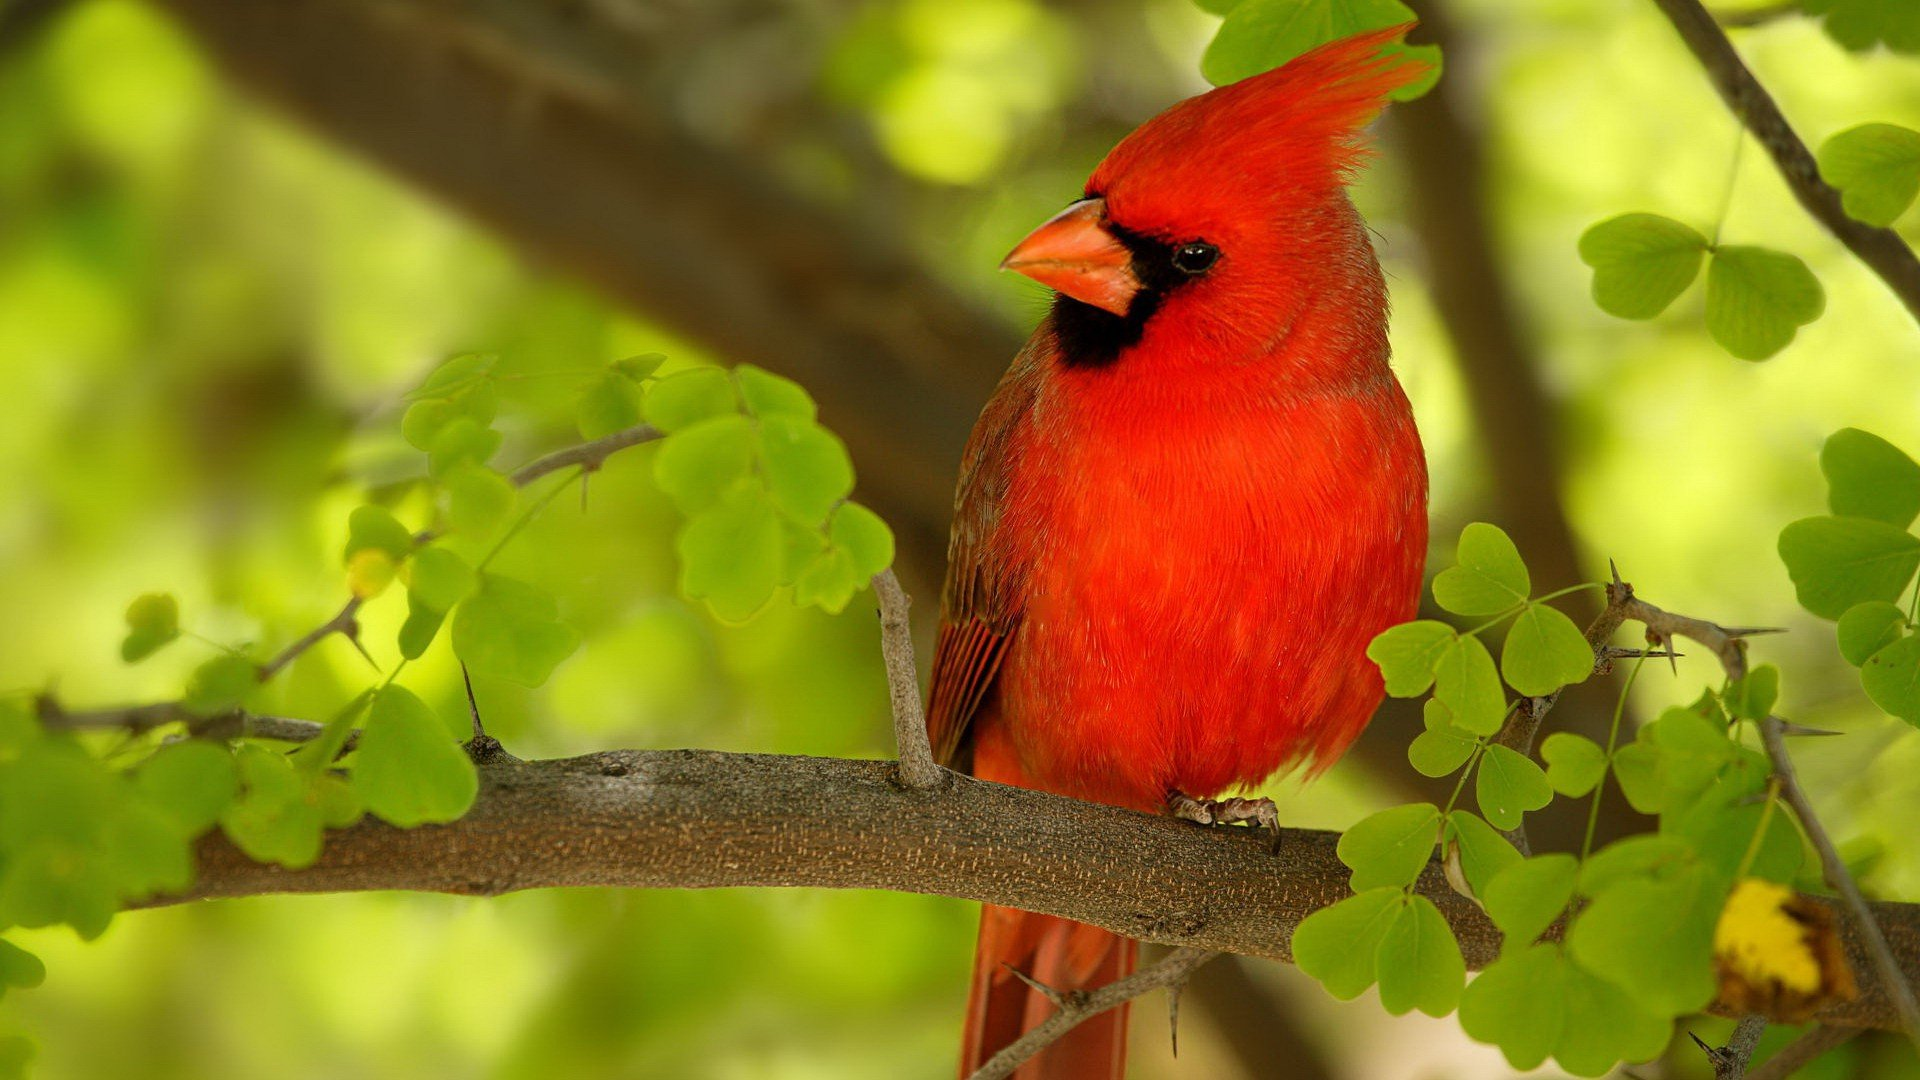 download Red Bird HD 1080p Wallpapers Download HD Wallpapers 1920x1080